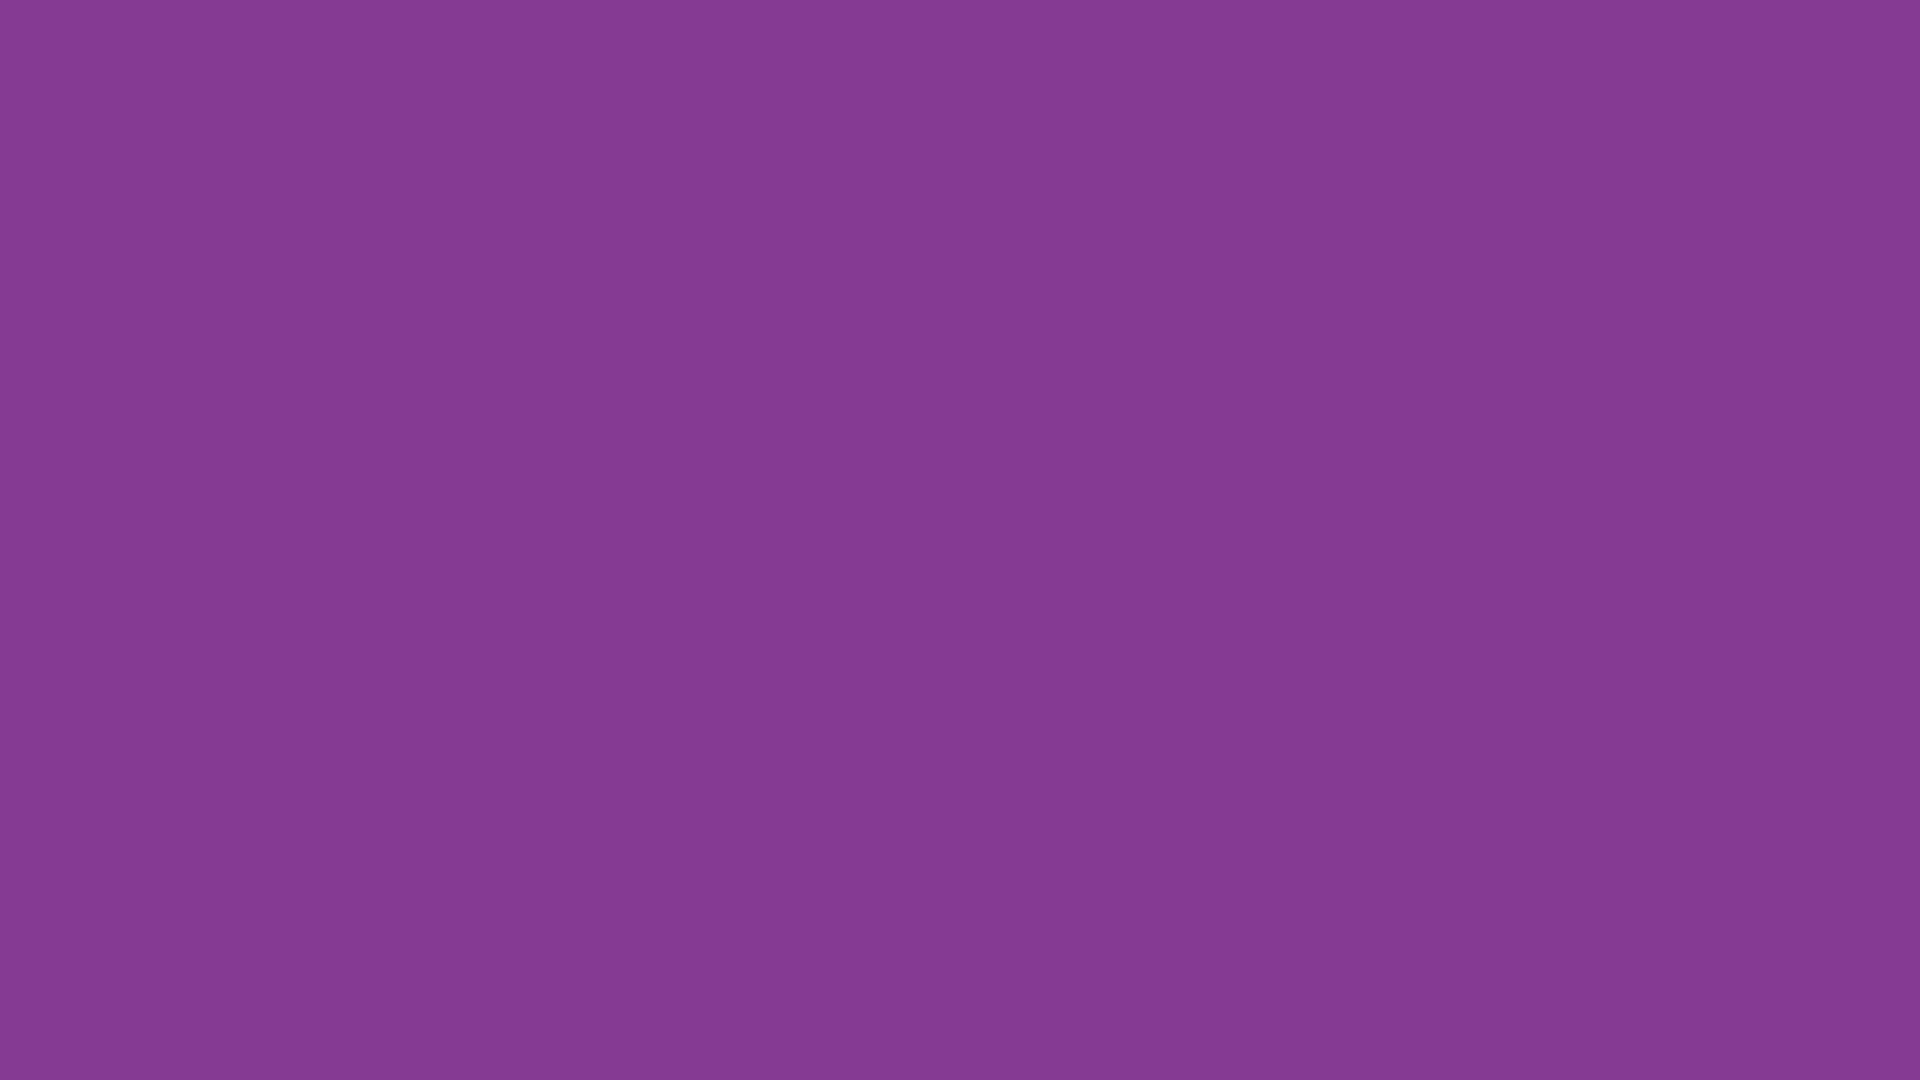 Karnataka Bank Logo Color Palette